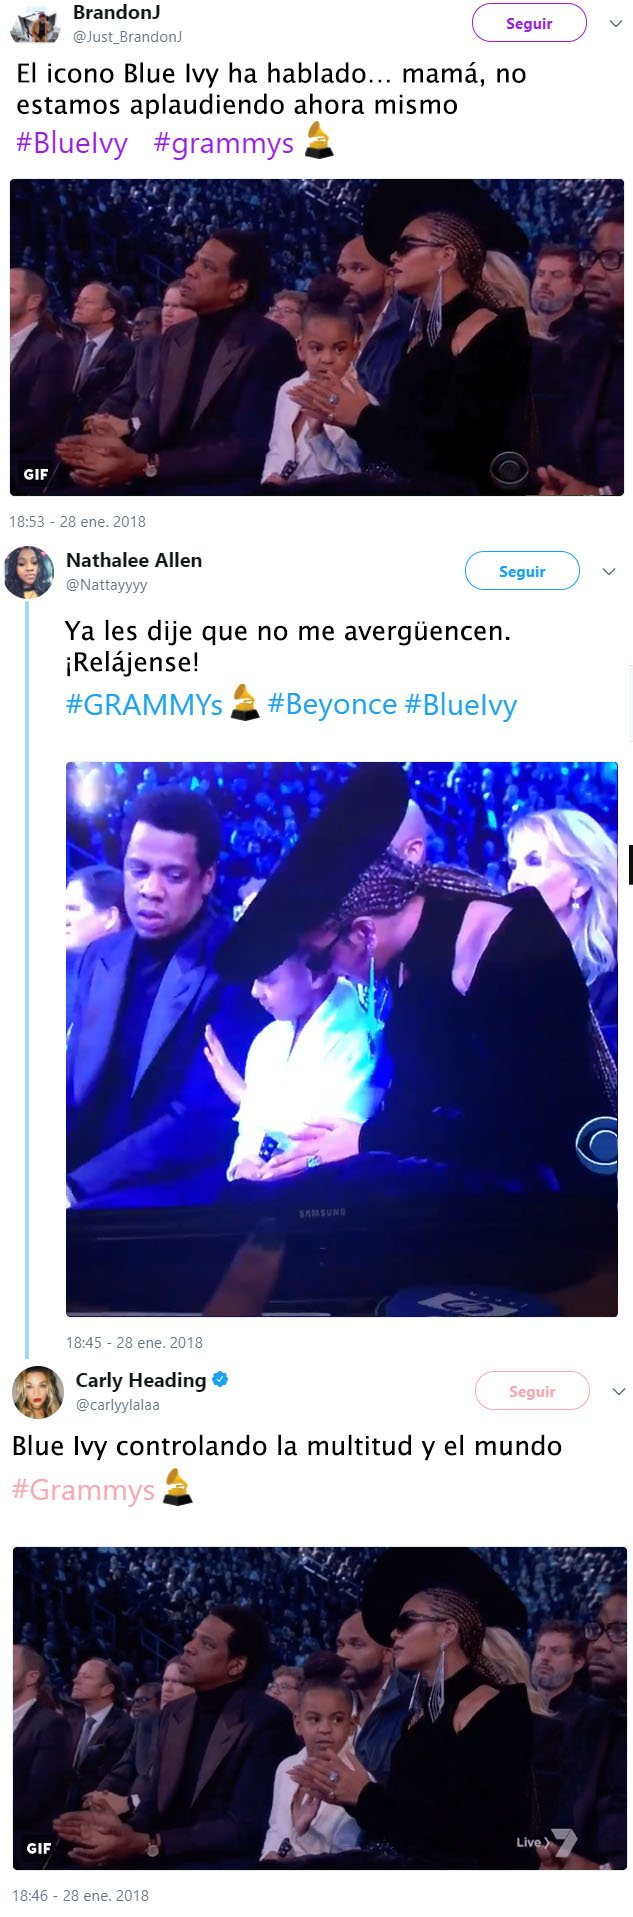 Blue Ivy shut parents